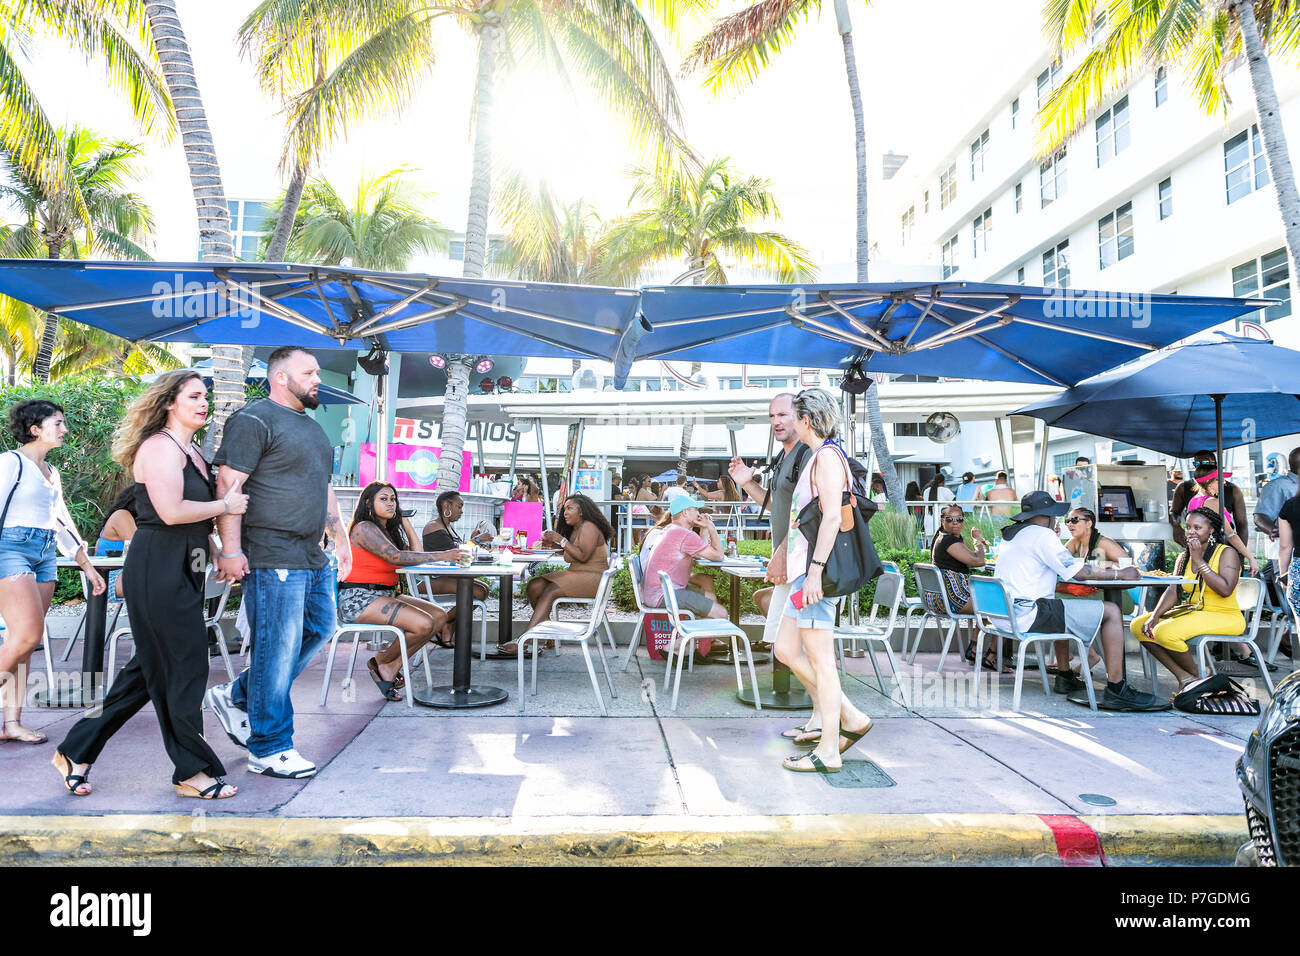 Miami Beach Usa May 5 2018 Sidewalk Many People Eating